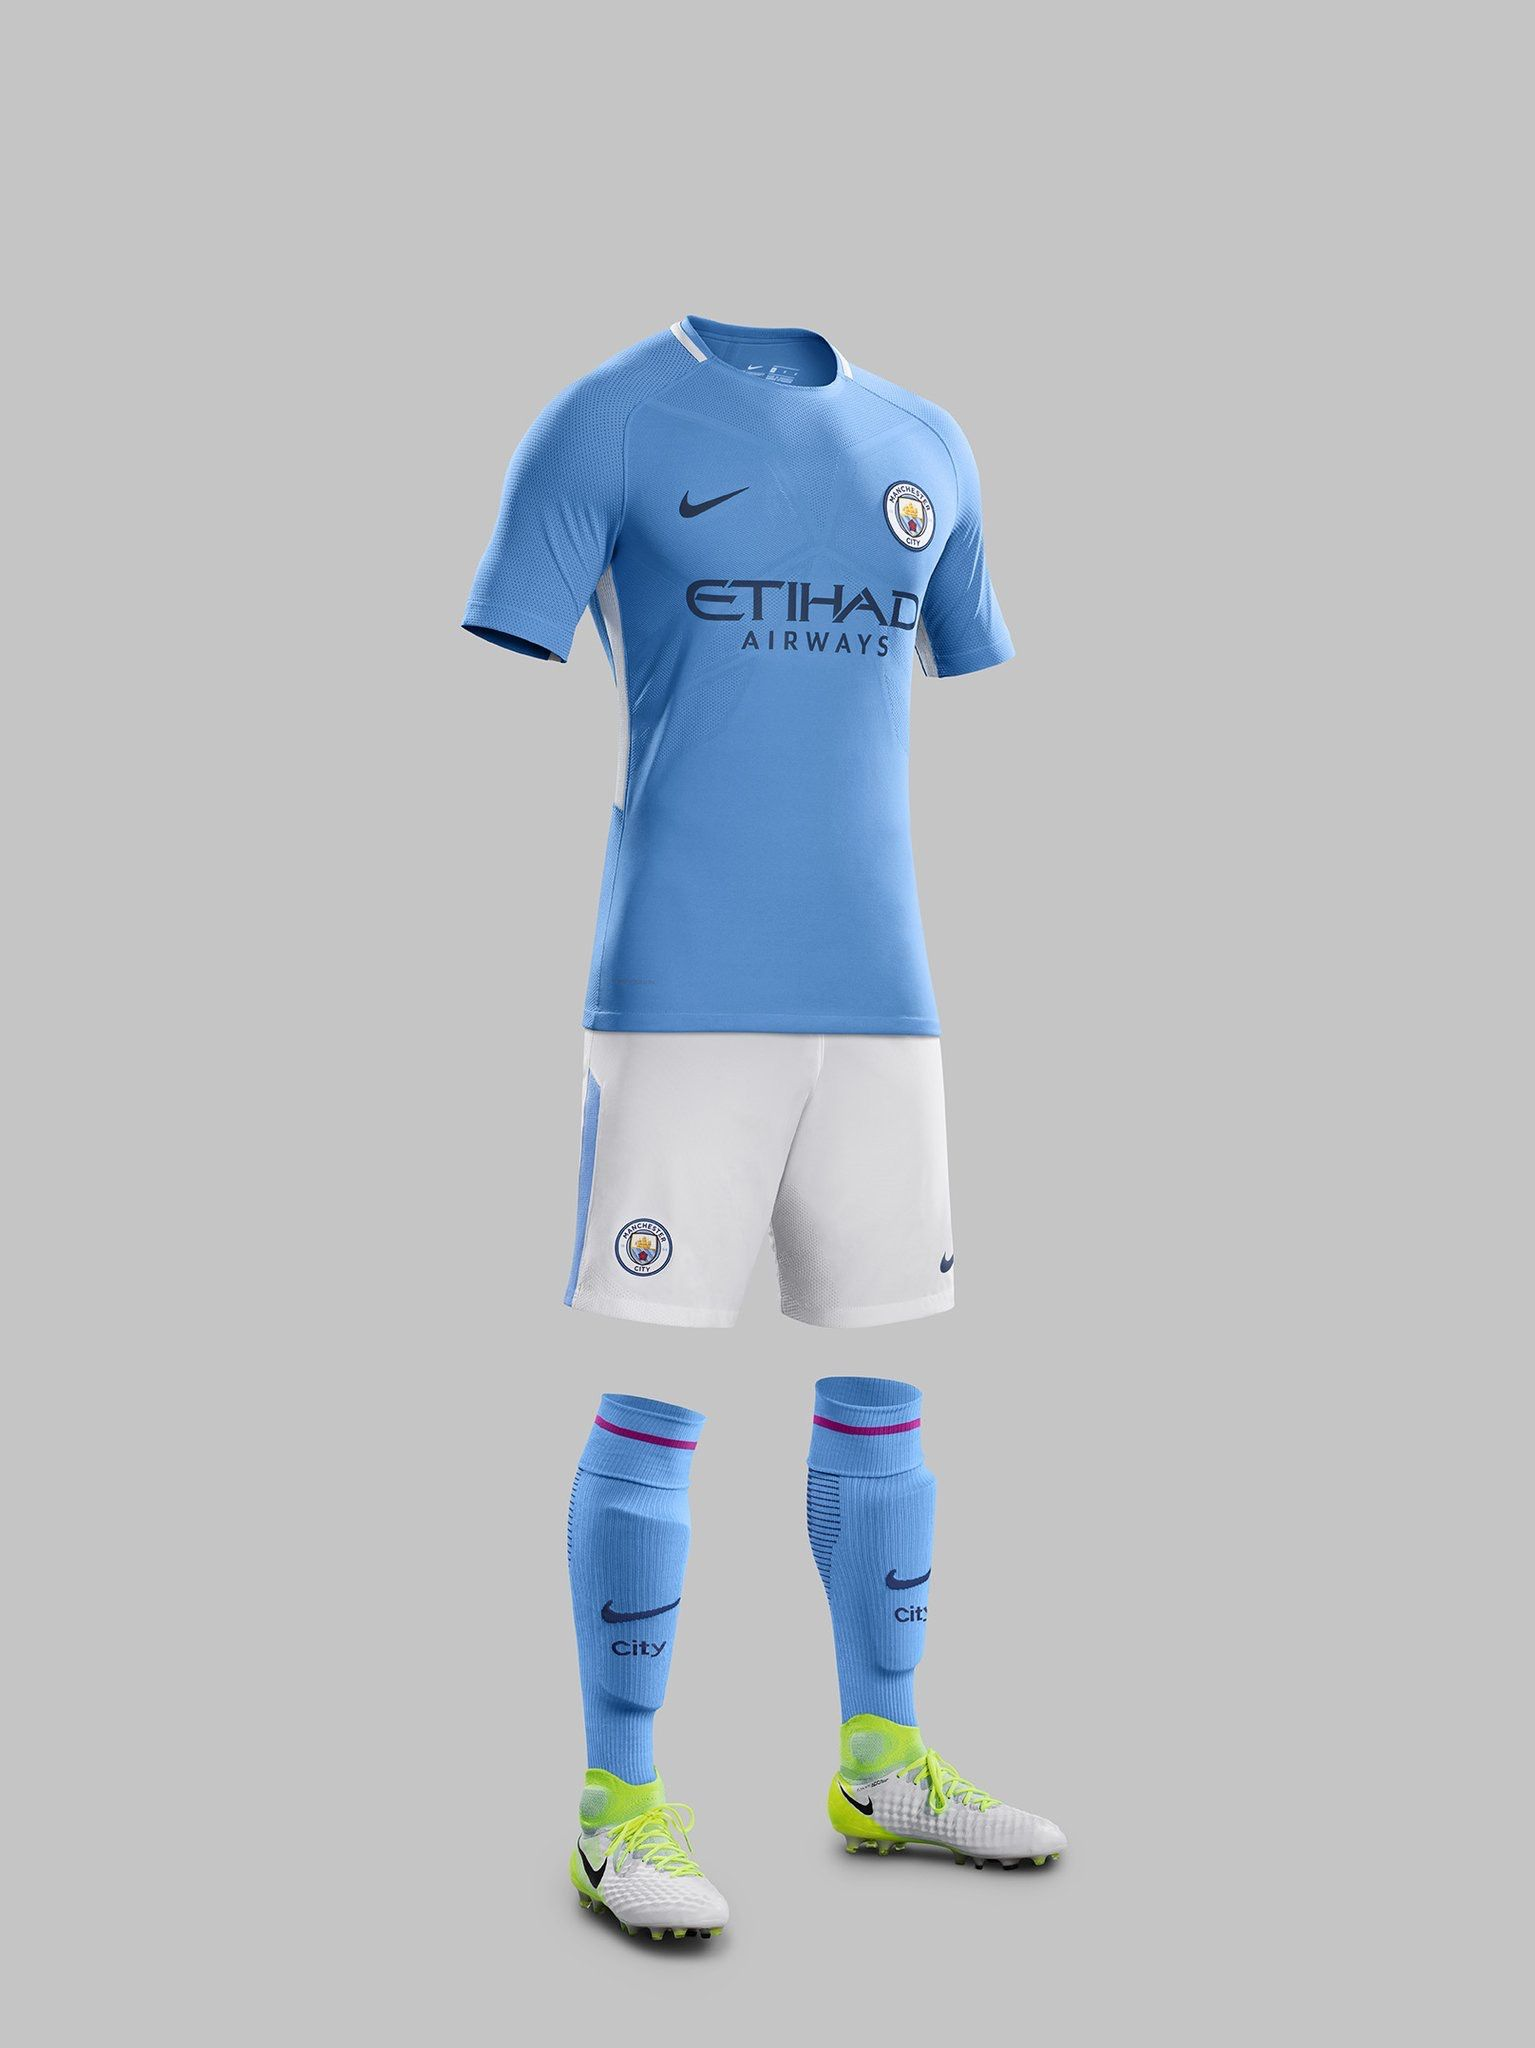 Manchester City 2017/2018 Home Kit (con imágenes